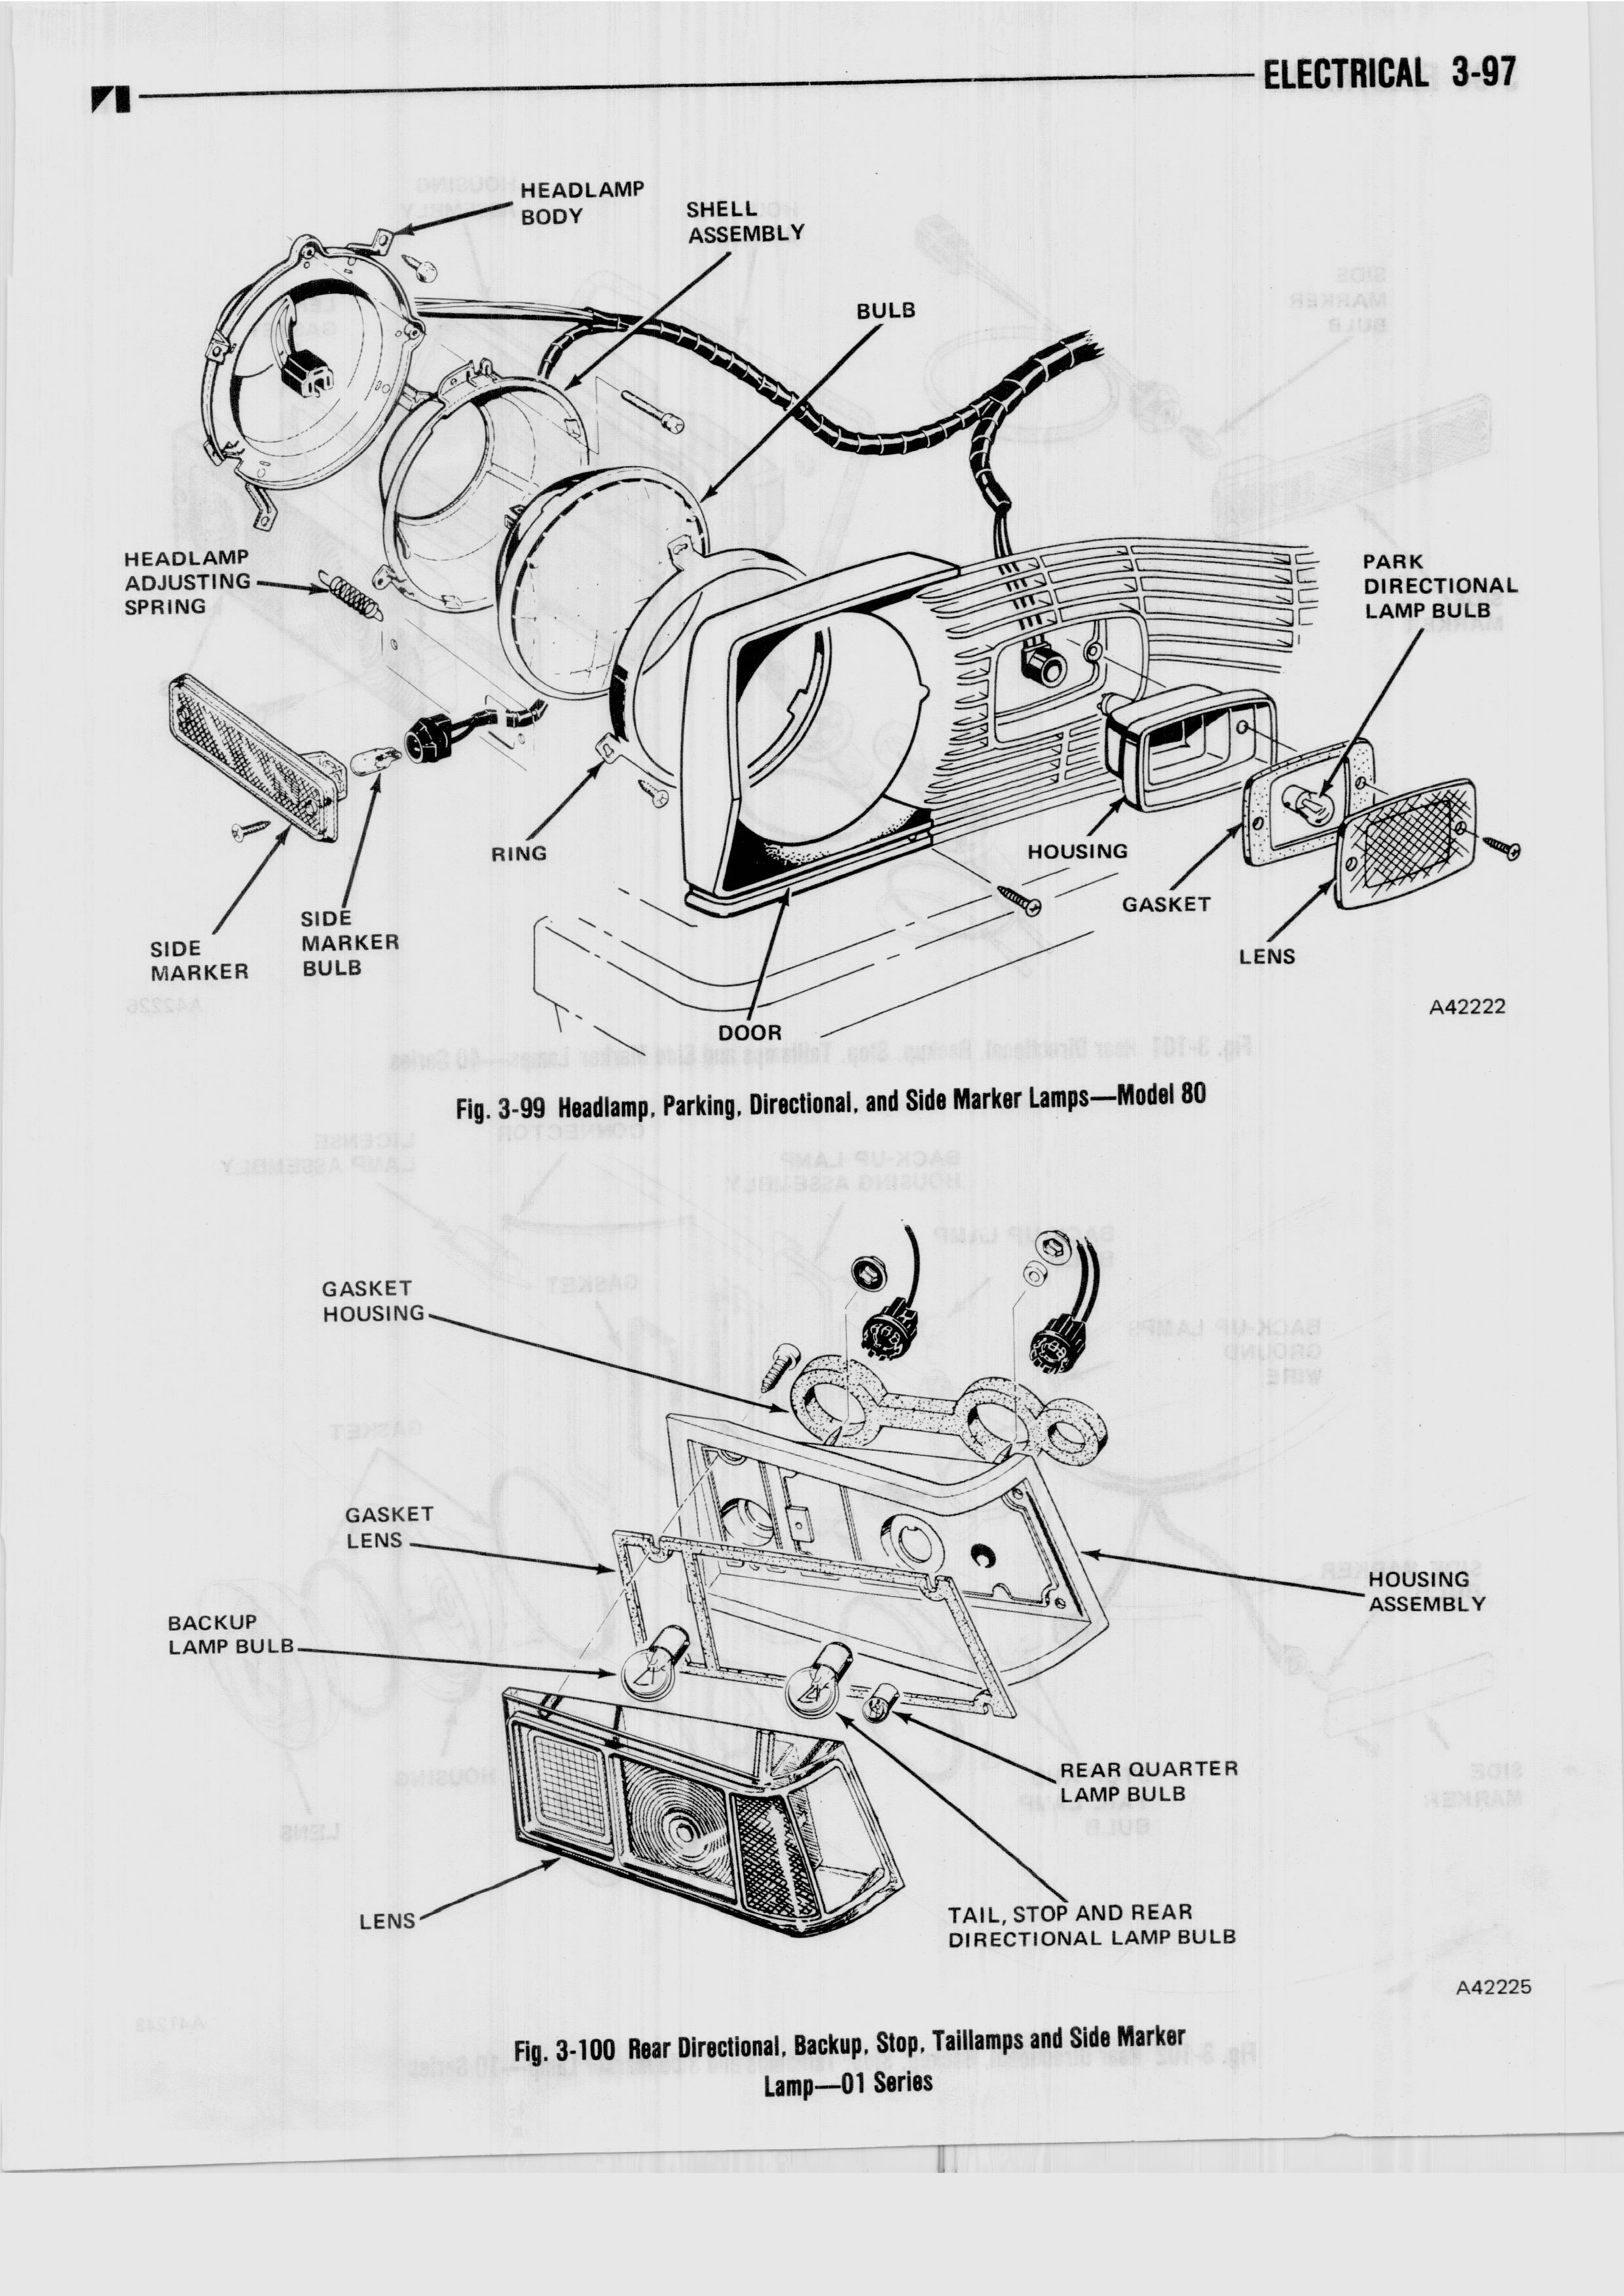 3 Electrical / 1976 AMC Technical Service Manual_Page_211.jpg